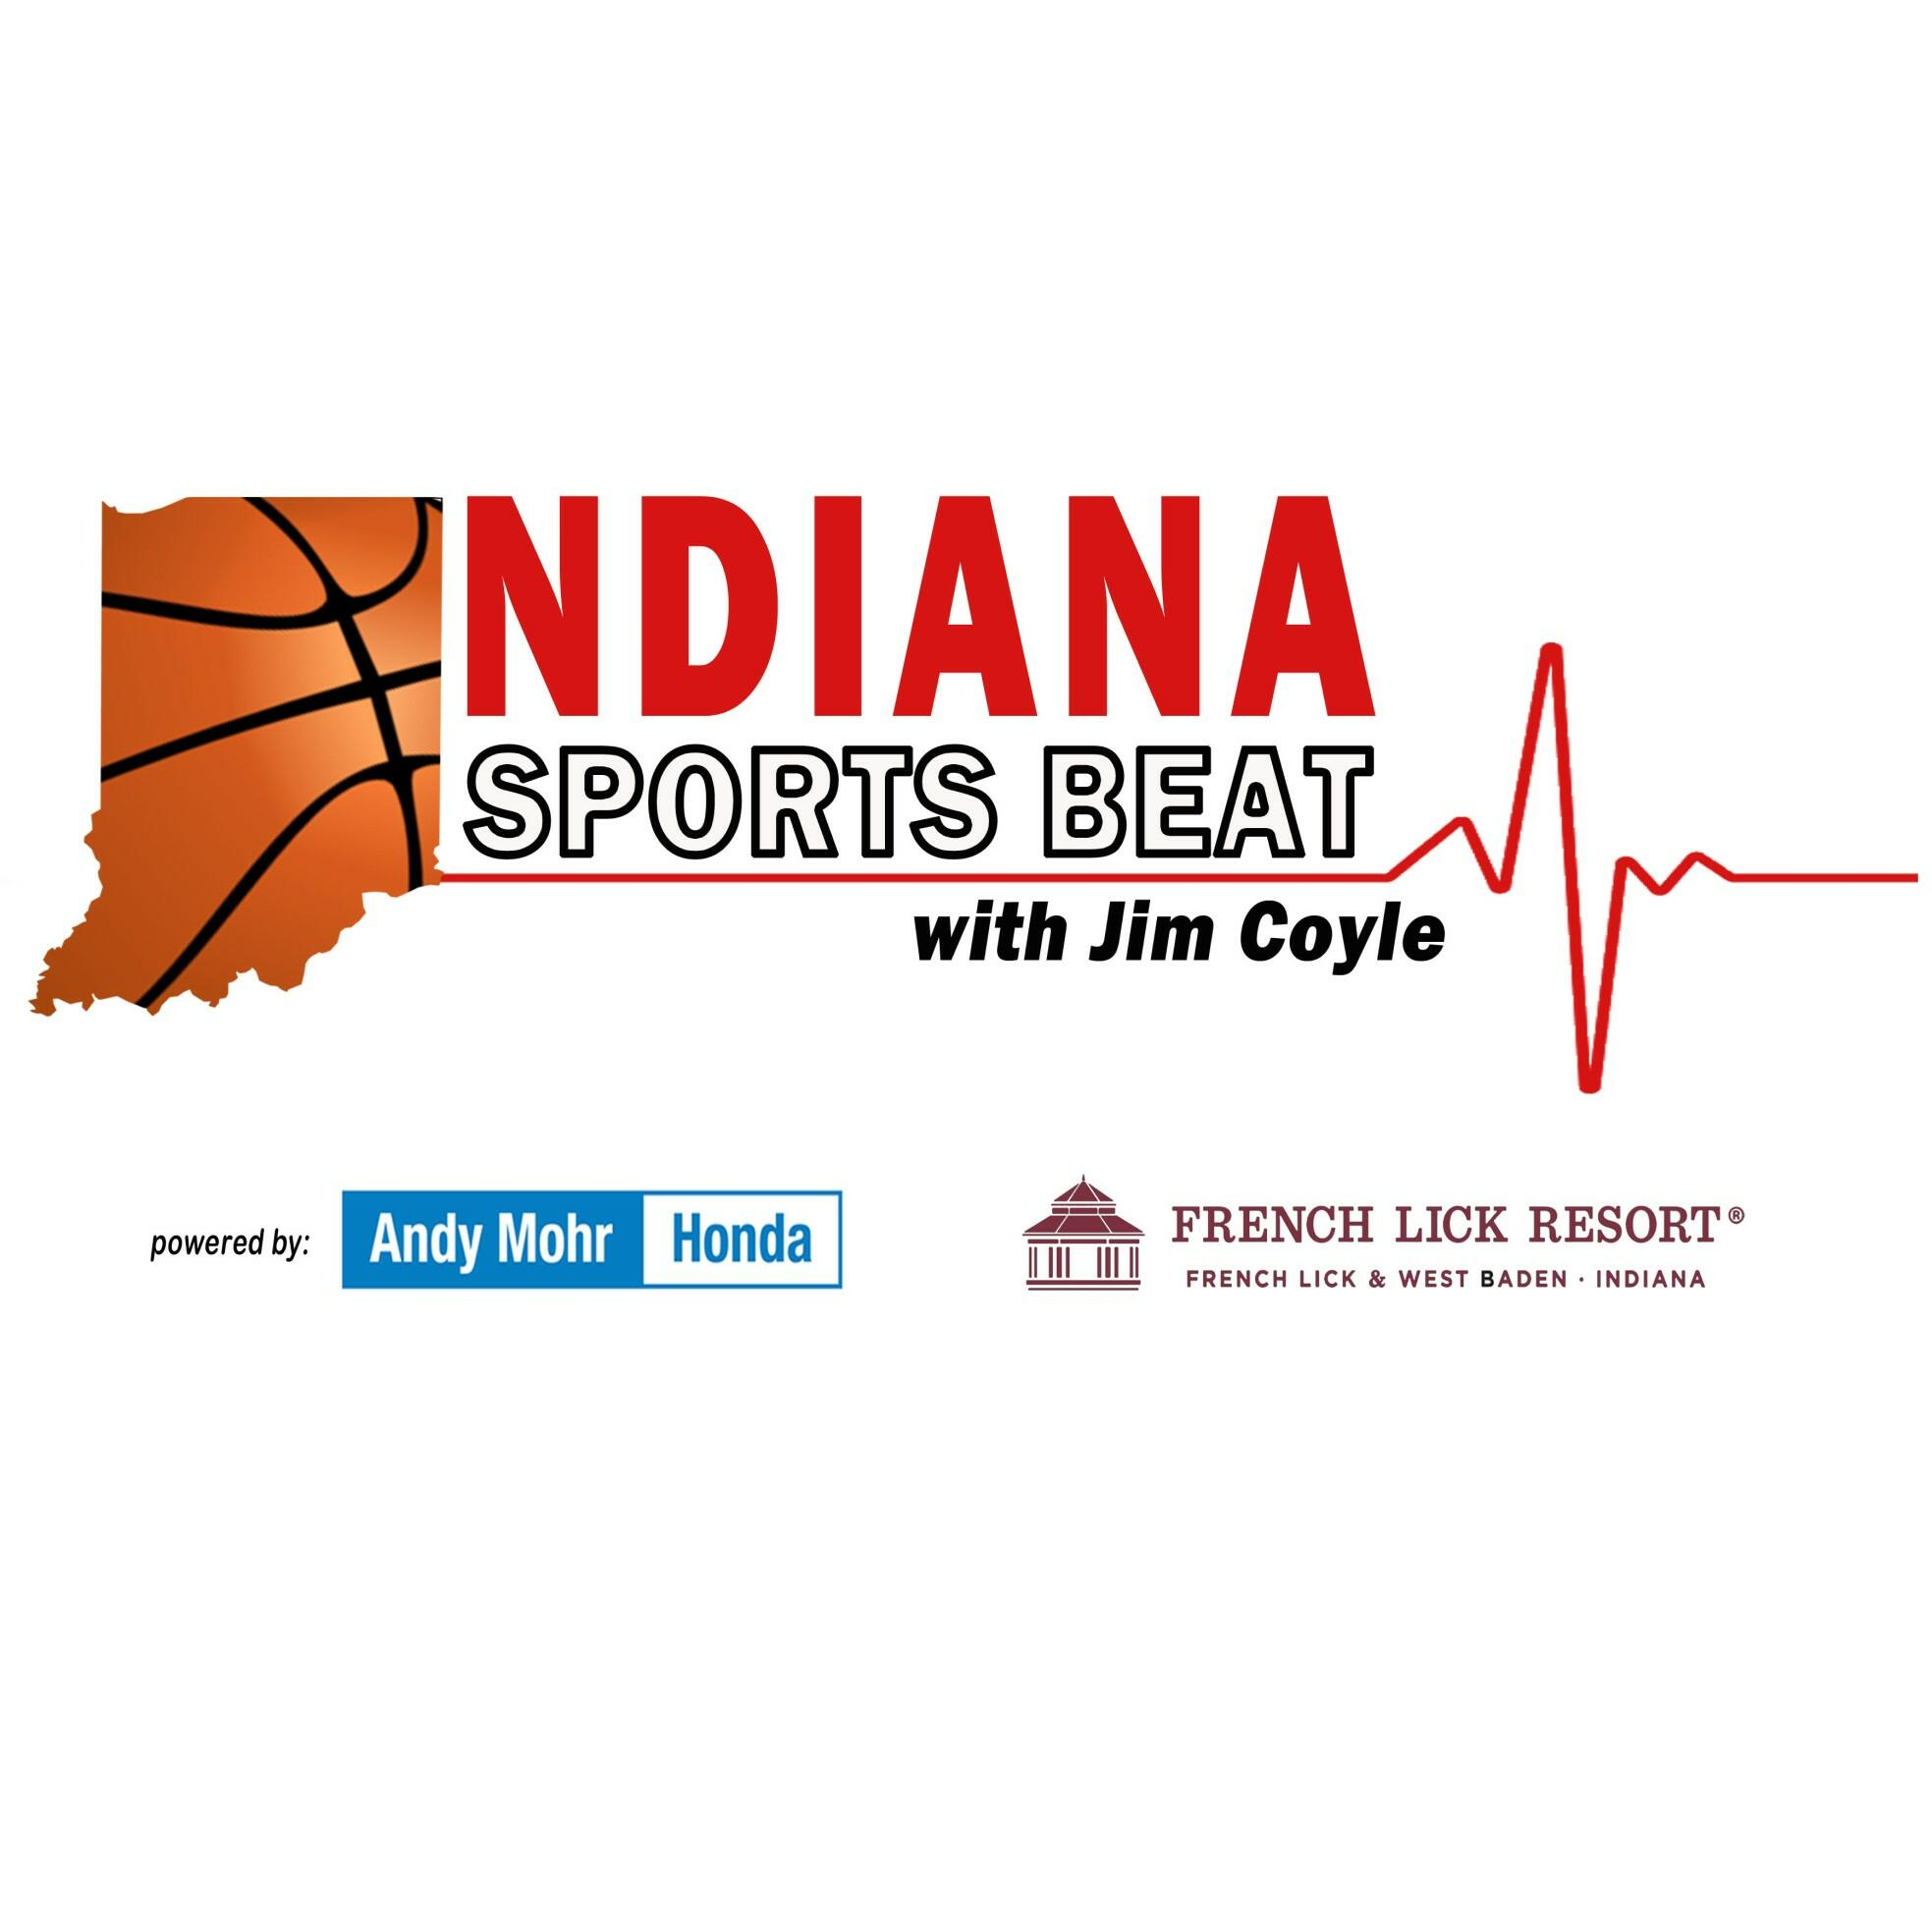 Indiana Sports Beat with Jim Coyle